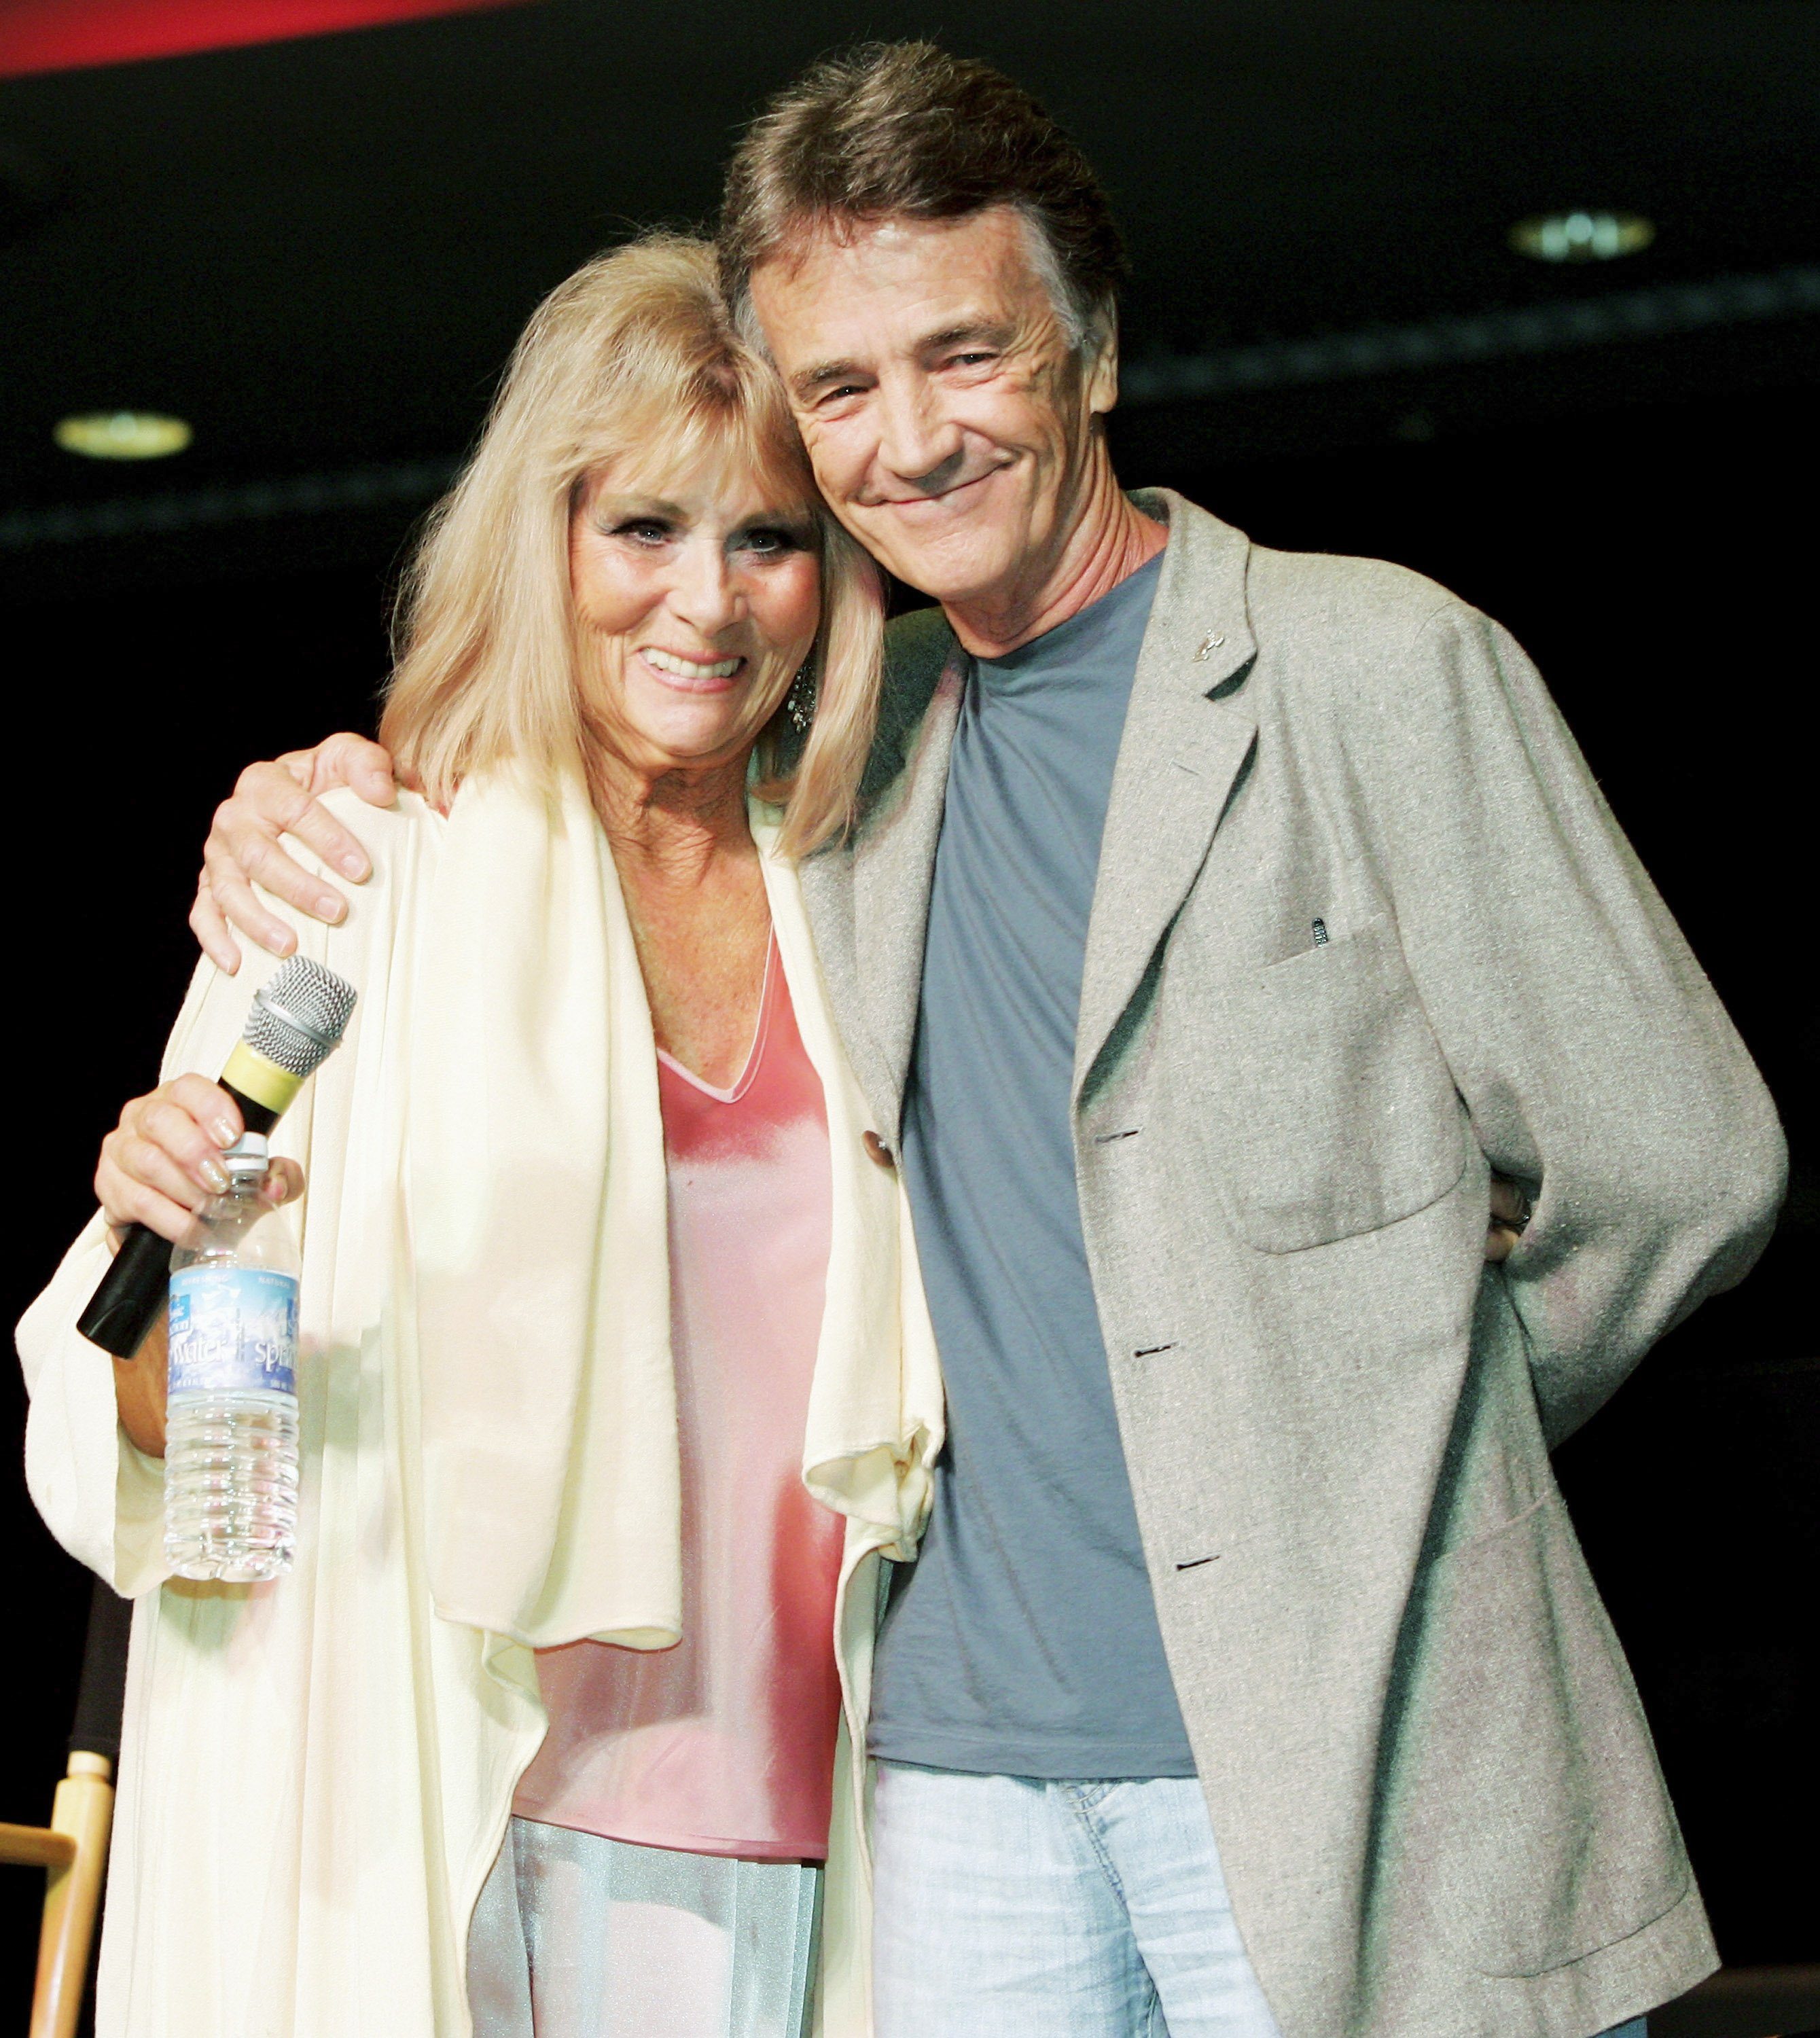 """Grace Lee Whitney, who played Janice Rand in the original """"Star Trek"""" television series and films, and actor Robert Walker Jr, who played the character Charlie Evans pose at the Star Trek convention at the Las Vegas Hilton August 11, 2005, in Las Vegas, Nevada 